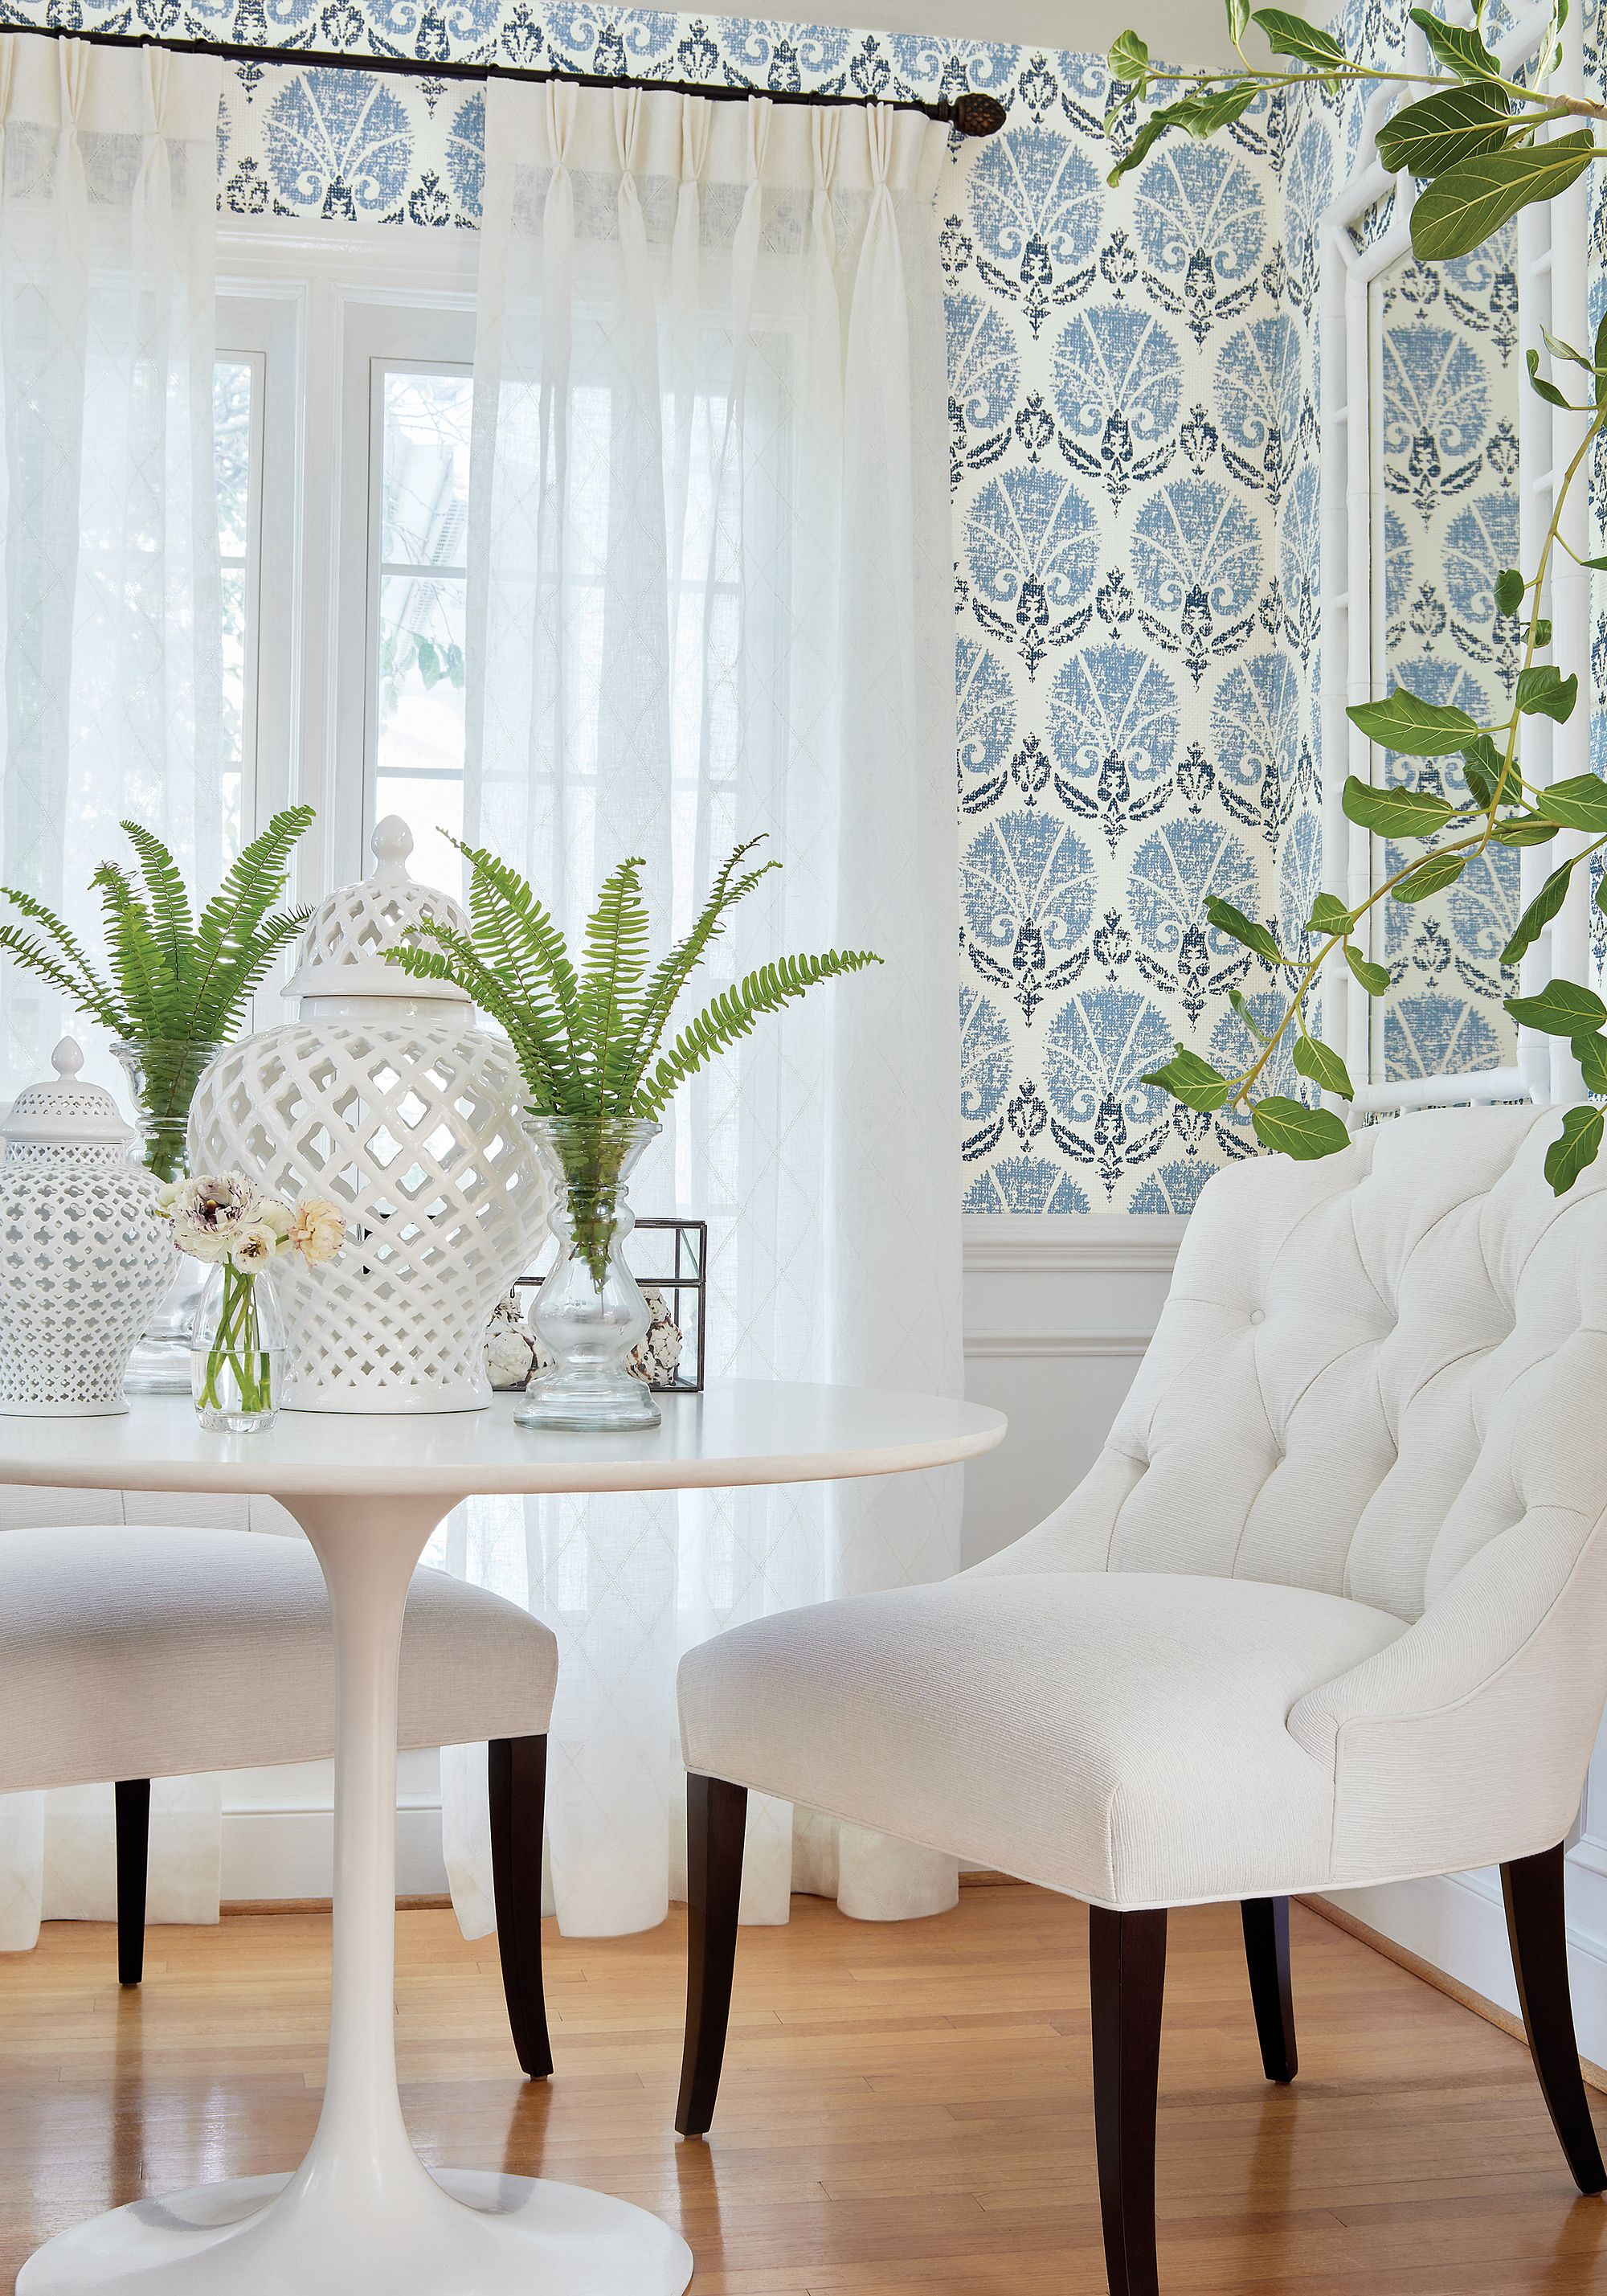 Belaire Chair in Beach ber woven fabric in White from Thibaut